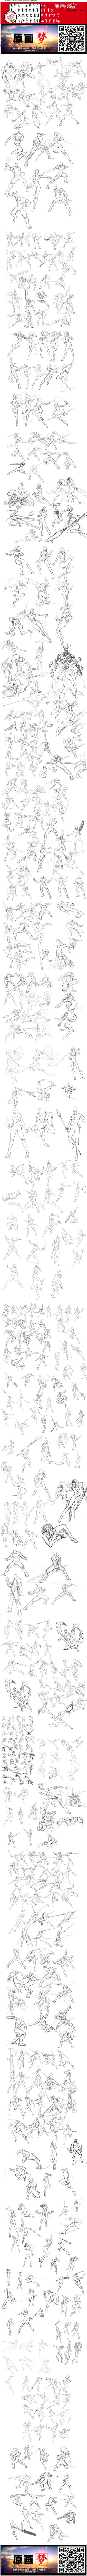 [Tutorial] various domineering human hands drawing